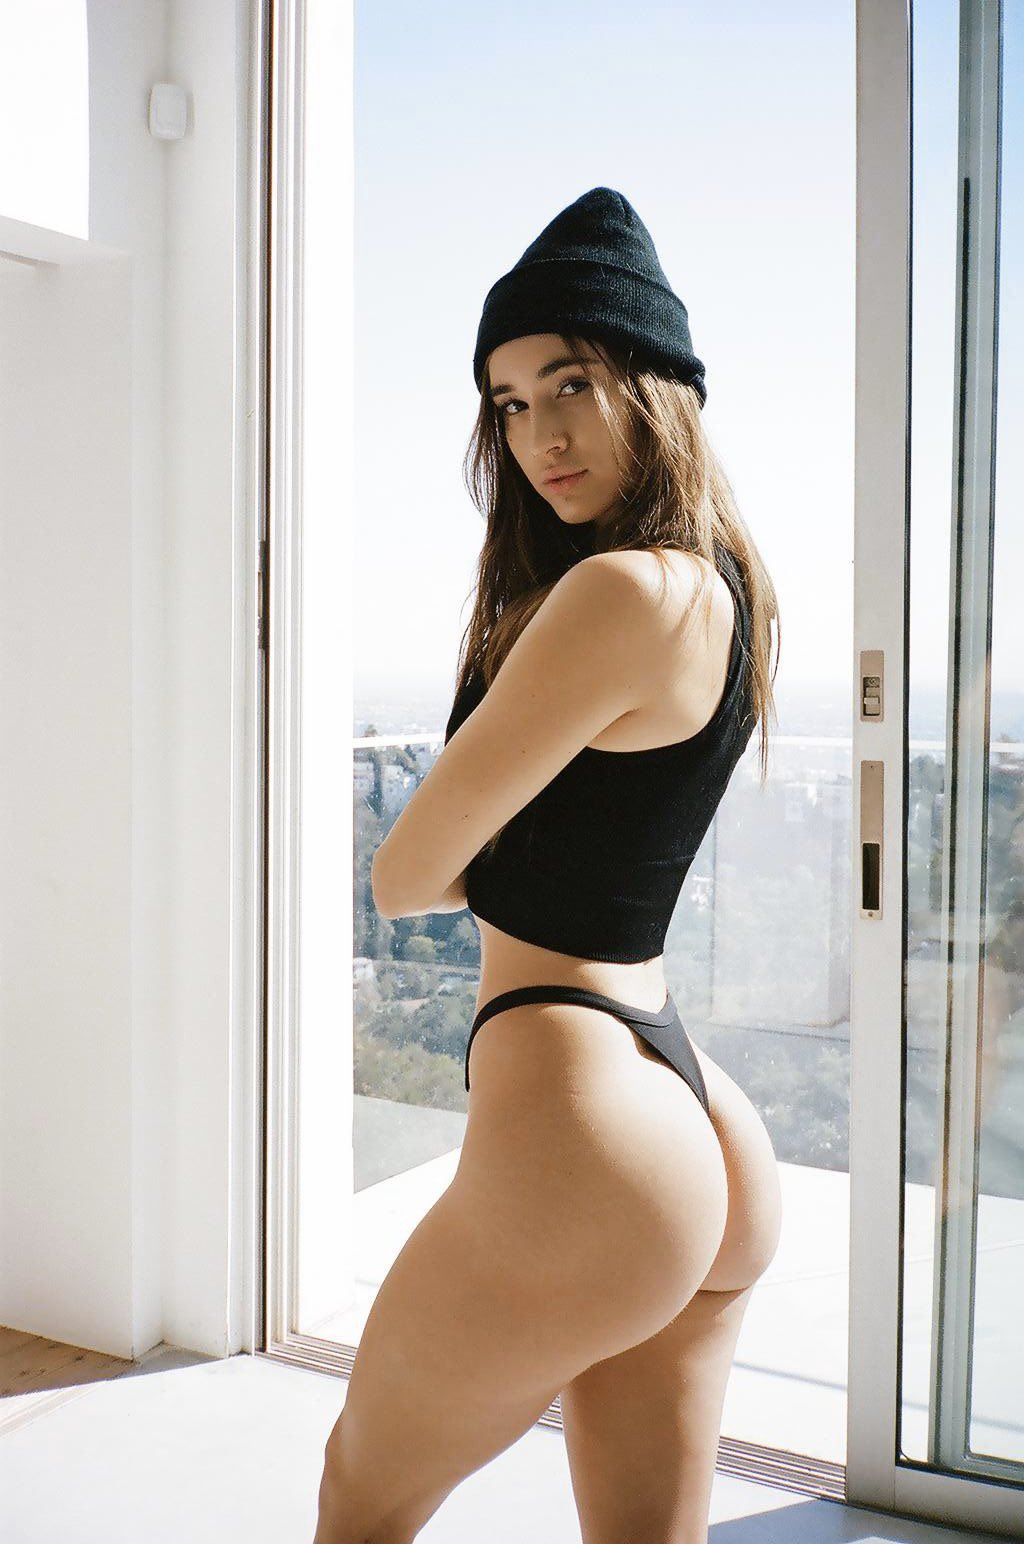 Natalie Roush Nude Leaked Videos and Naked Pics! 104